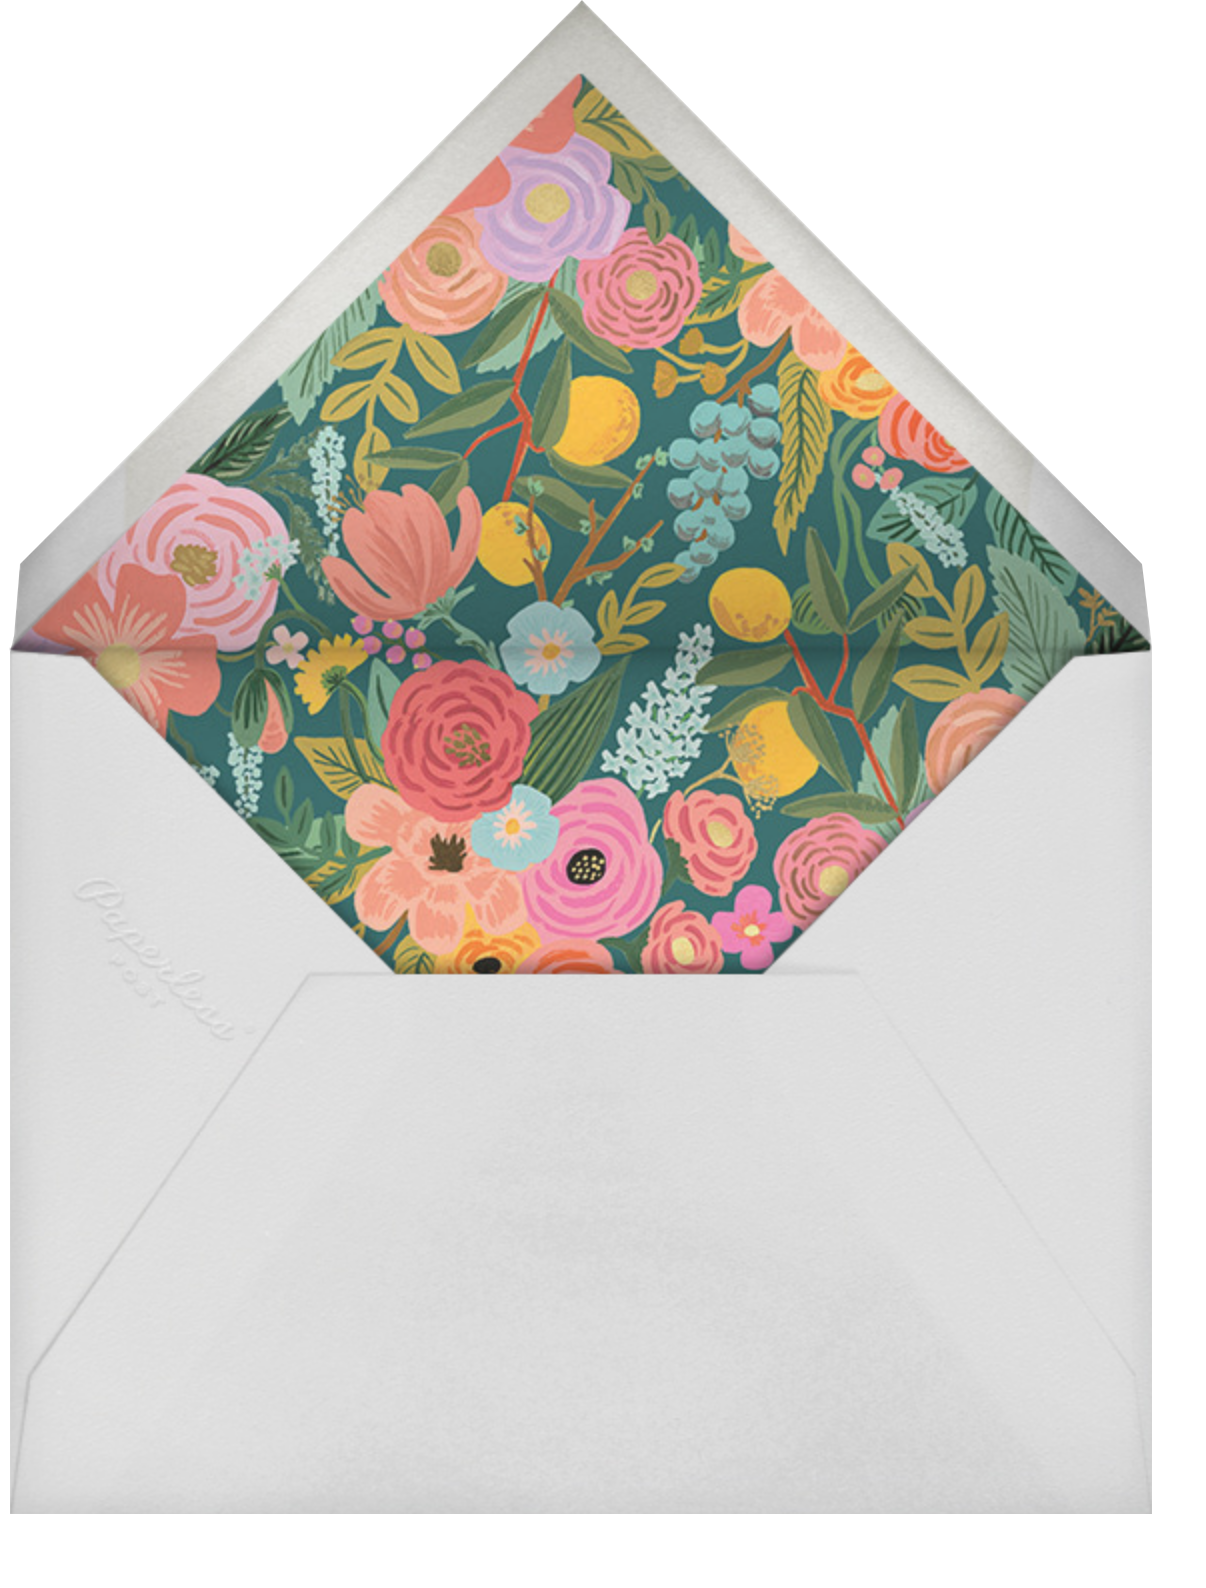 Garden Party (Tall) - Rifle Paper Co. - Baby shower - envelope back